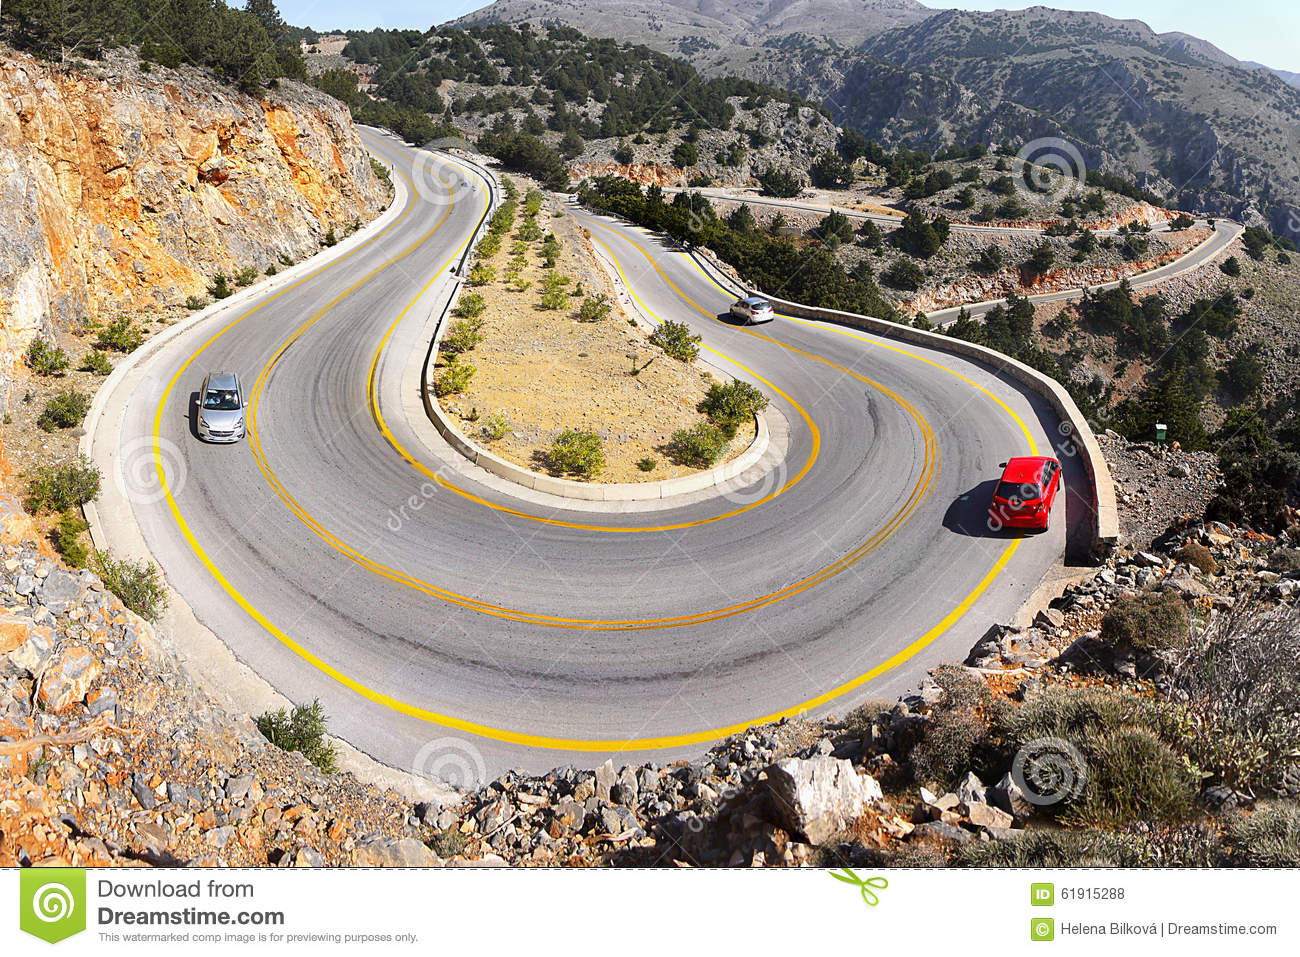 Mountain Road Dangerous Hairpins Bends Stock Photo - Image of